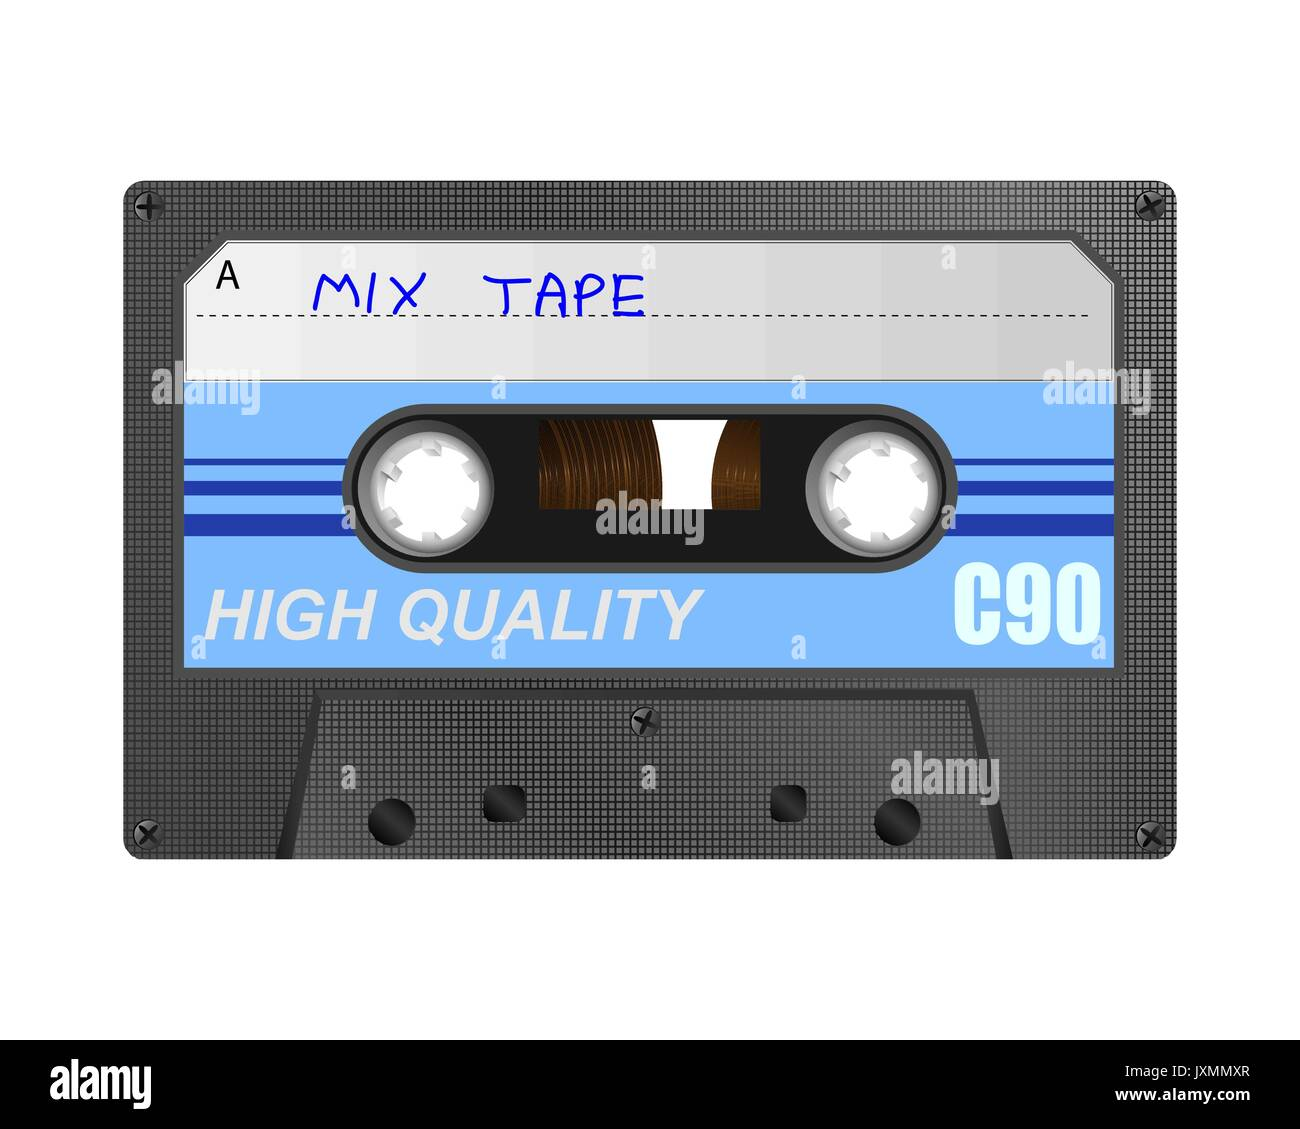 Detailed retro C90 audio cassette with mix tape hand written title - Stock Vector